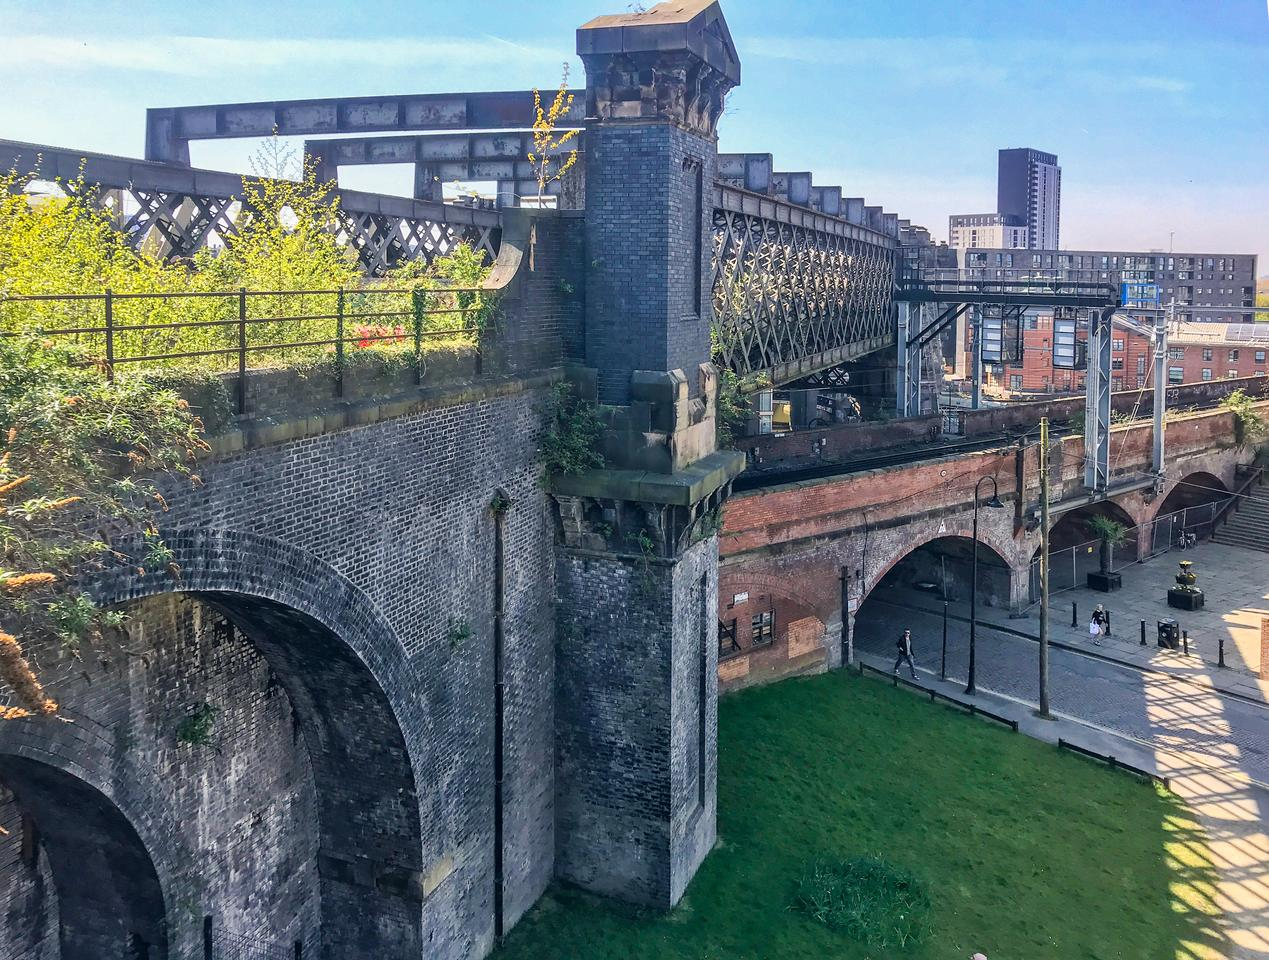 The Castlefield Viaduct on which the High Line-style park will be built has become dilapidated and greenery already grows on it naturally